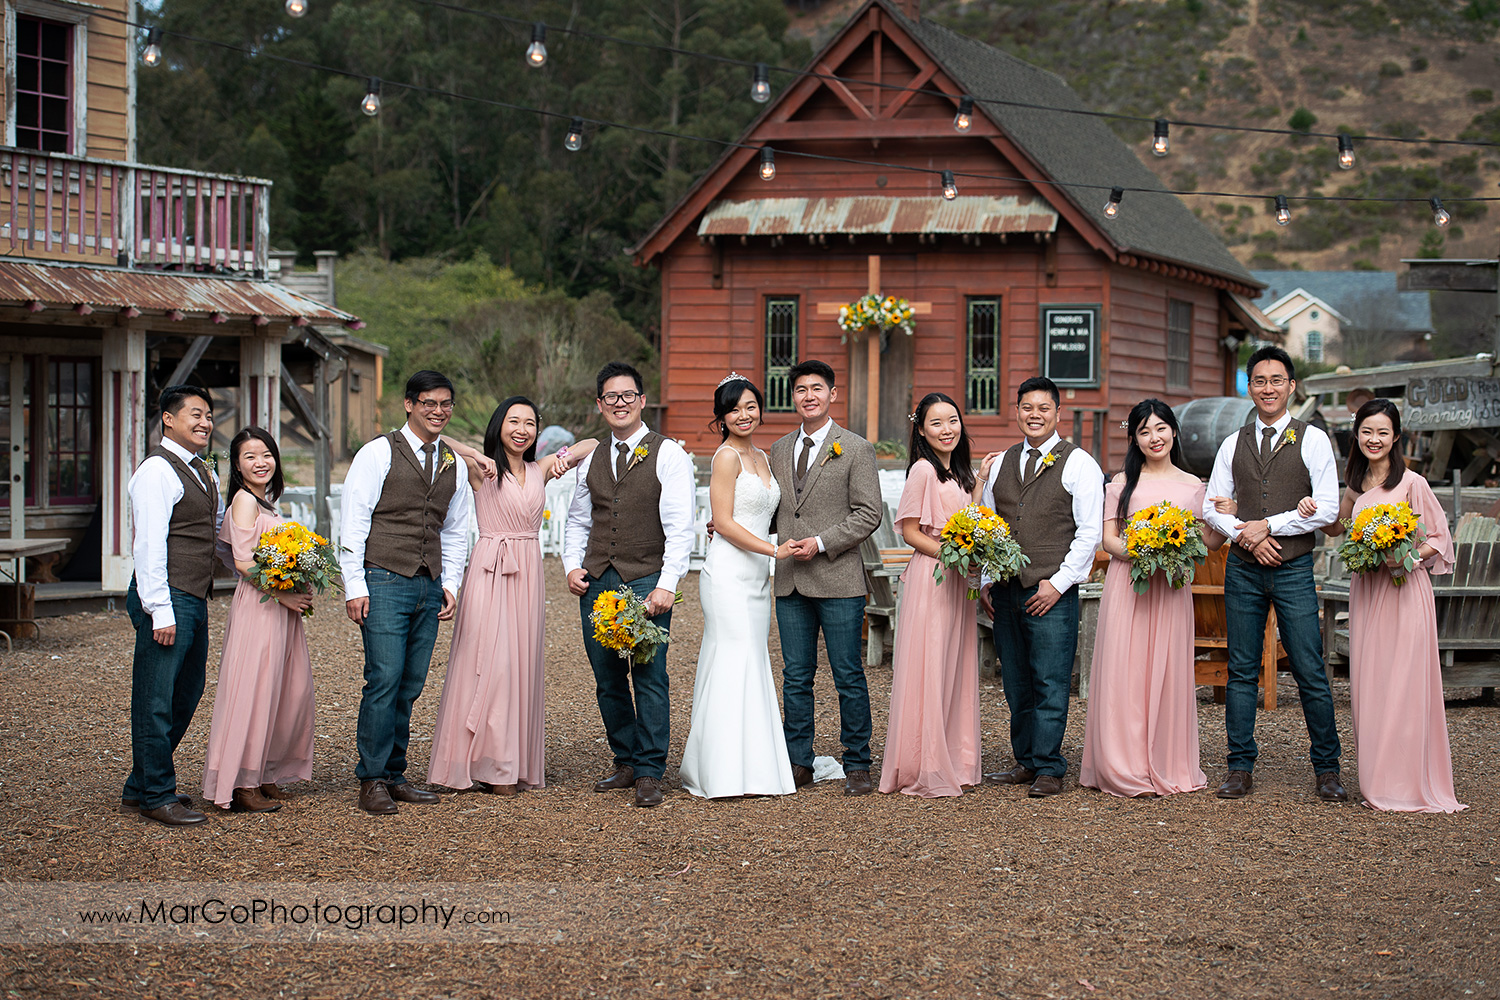 bridal party in vanity fair pose at Long Branch Saloon & Farms in Half Moon Bay